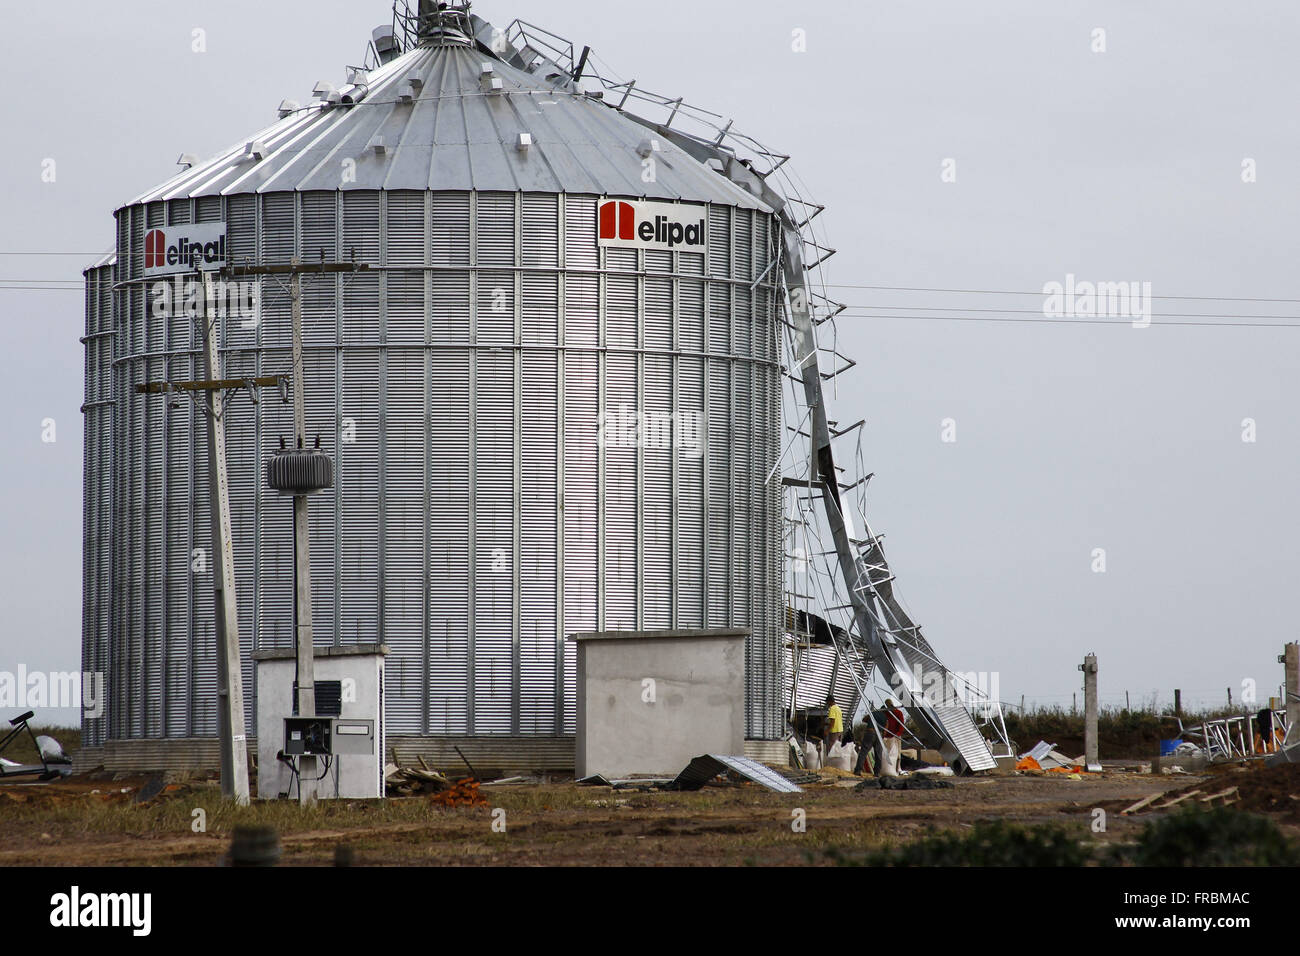 Damage caused by gale in storage silo - Stock Image